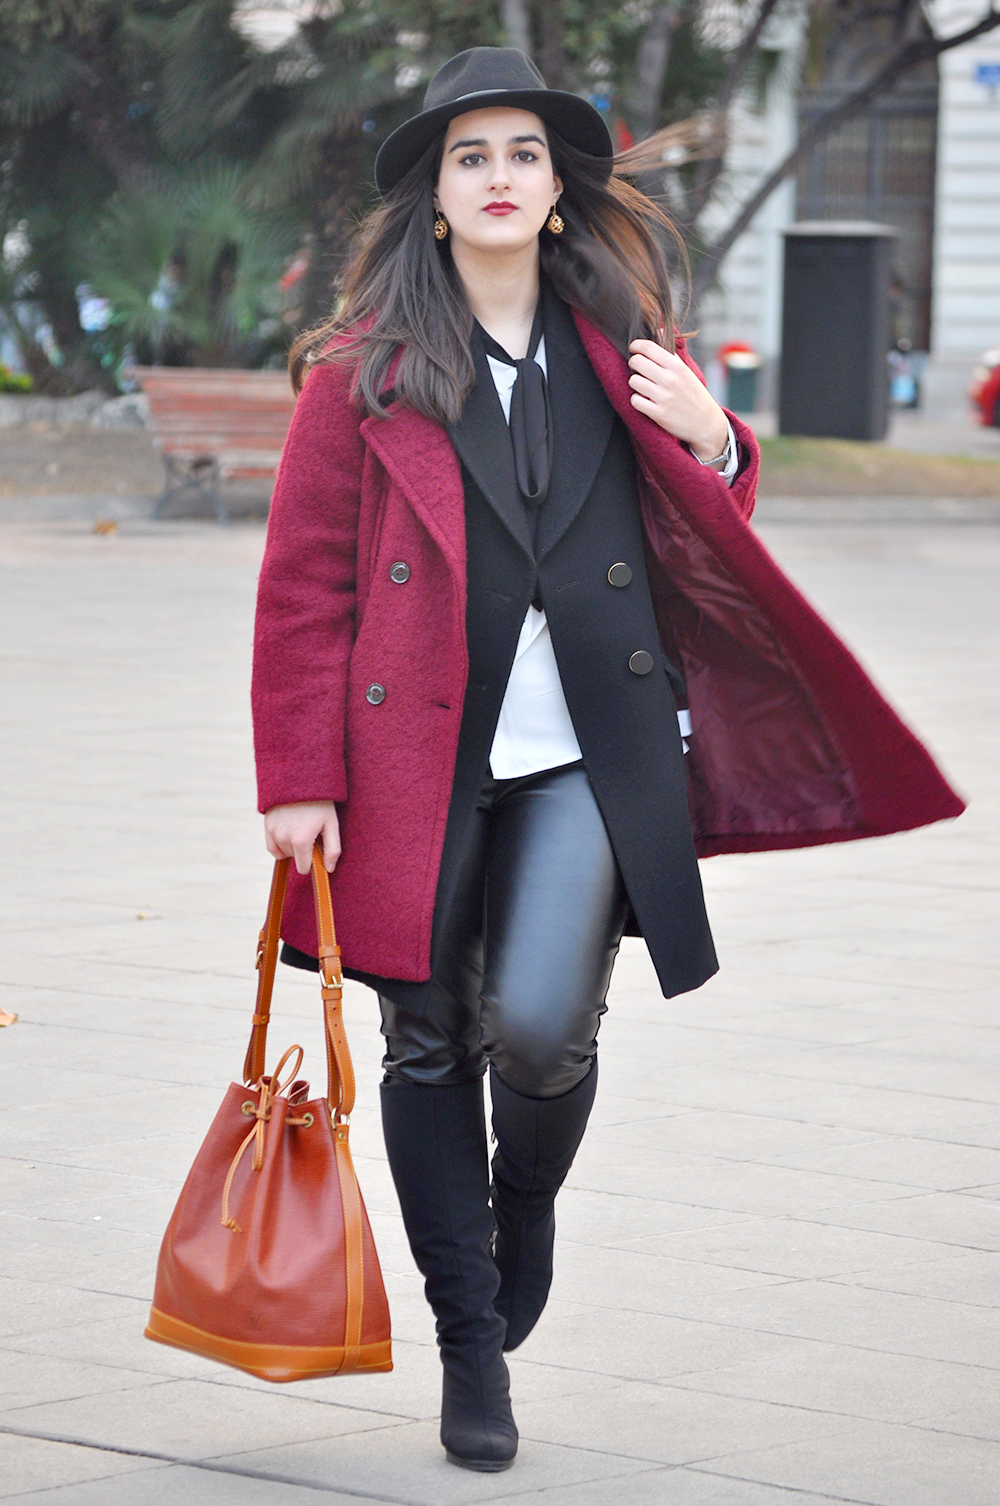 valencia fashion blogger spain somethingfashion fedora hat streetstyle winter boots LV bucket bag coat_0092 copia